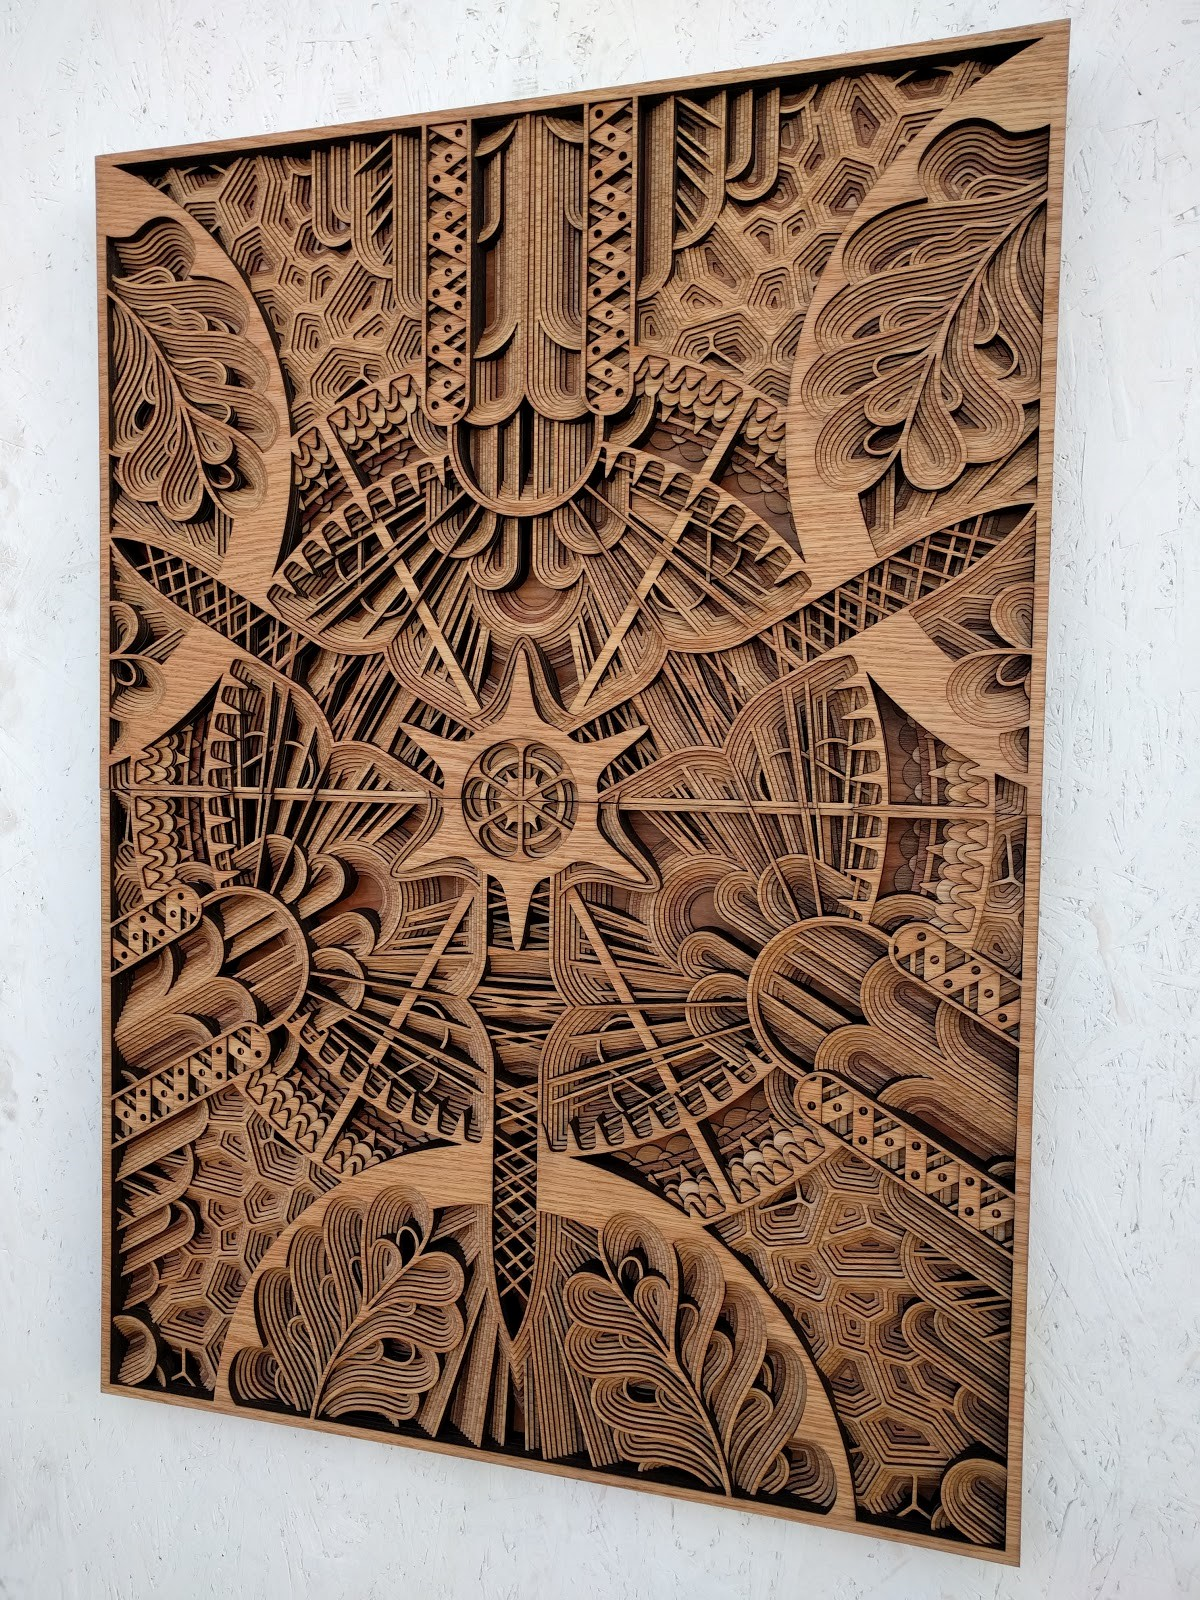 Gabriel Schama  , After Haeckel, 1 of 3 , 2016. Plywood. 31 x 41 in. Courtesy of the Artist. 2016.GS.01.  Photo: Courtesy of the Artist   METHOD: Laser cut